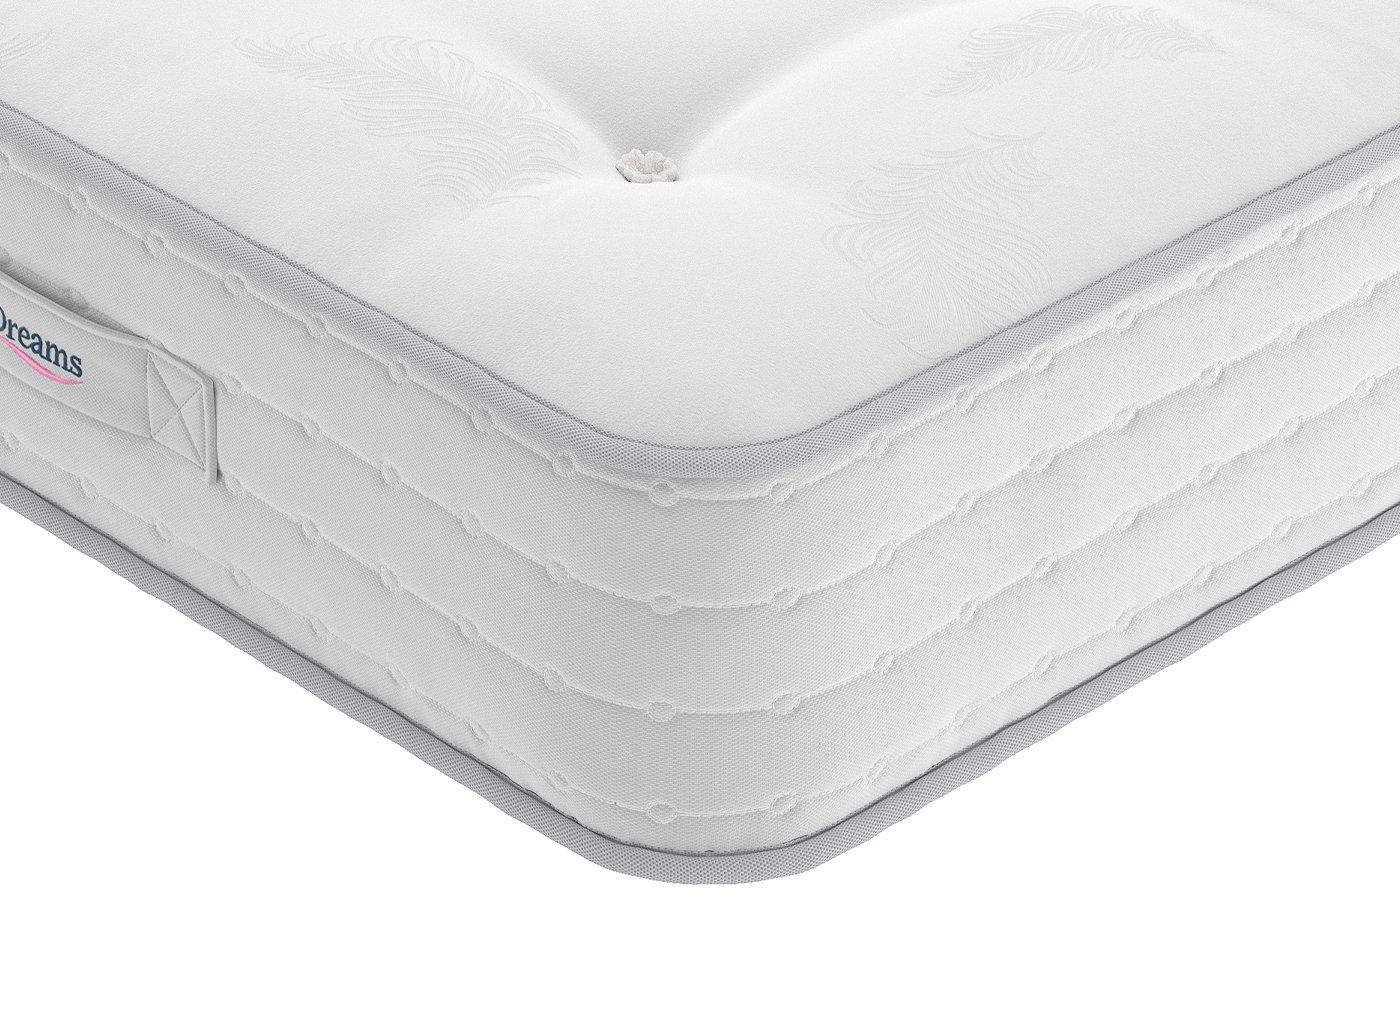 Hudson Pocket Sprung Mattress - Firm 4'6 Double